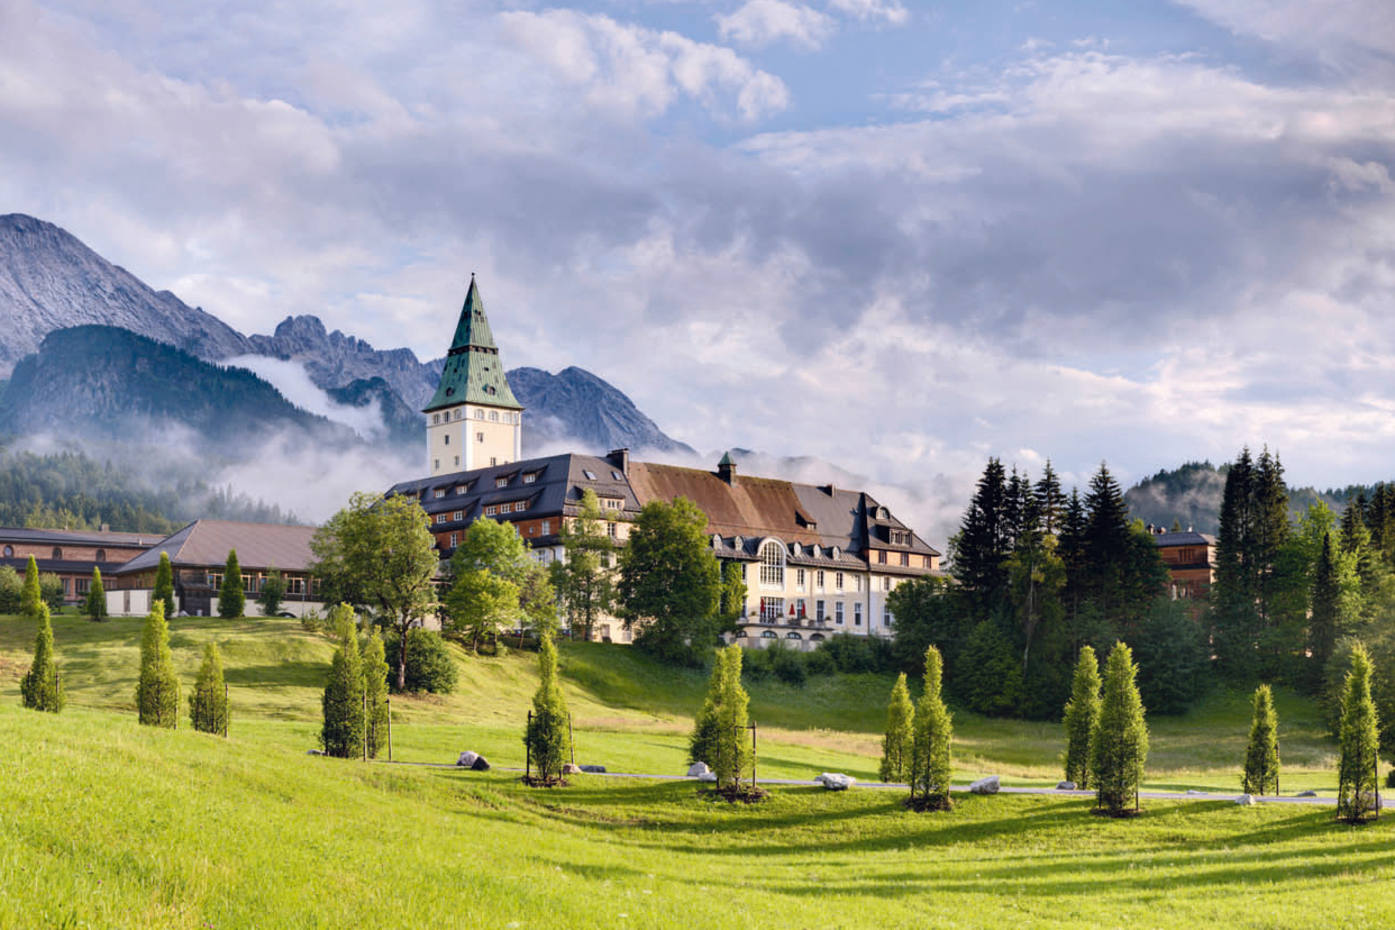 Schloss Elmau, at the foot of the Wettersteins in Bavaria